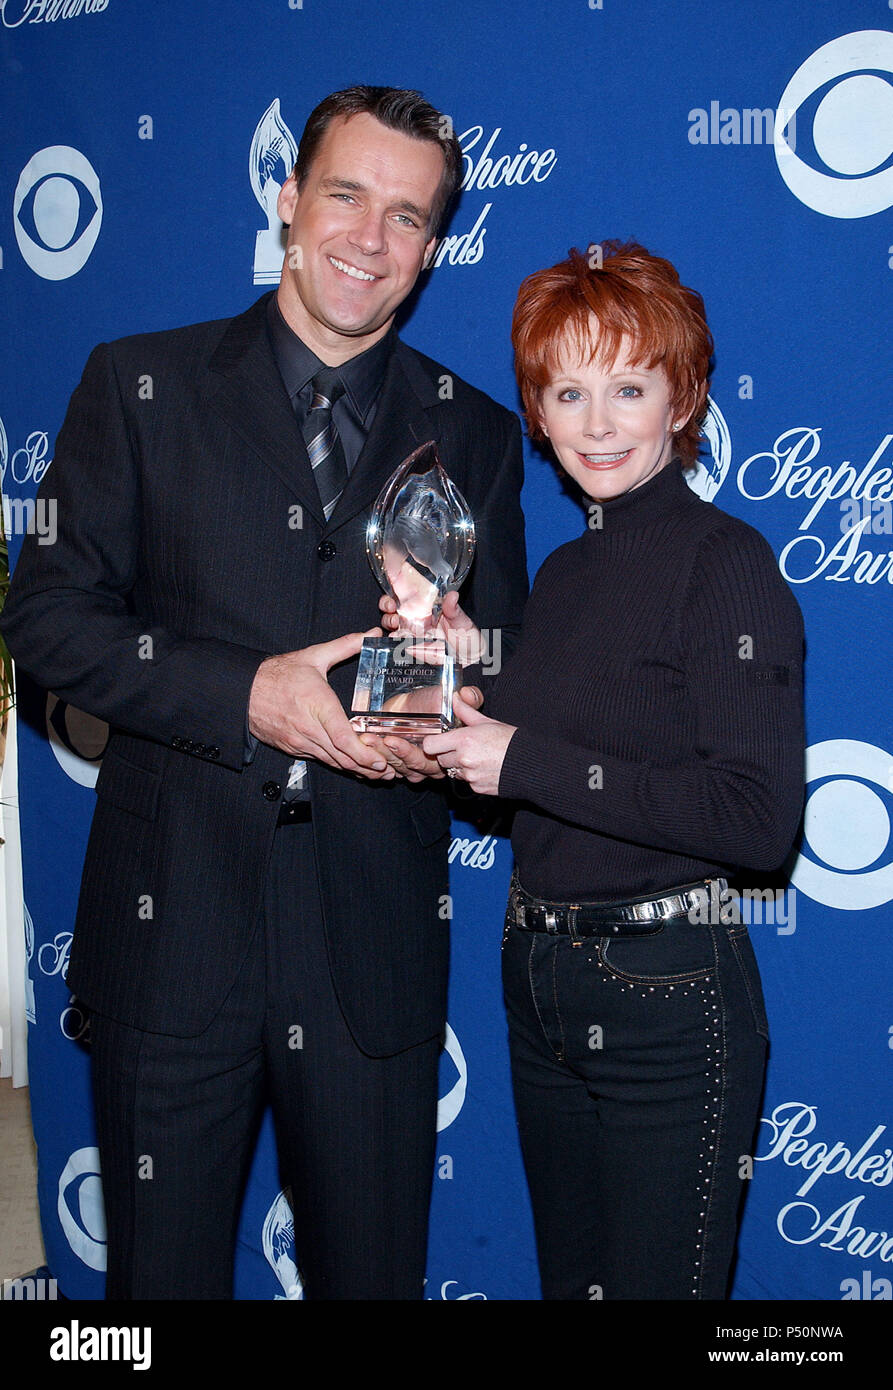 David James Elliott - JAG  -and Reba McEntire were presenting the nominees for the 28th People's  Choice Awards at the Beverly Hilton in Los Angeles. November 27, 2001.           -            ElliottDJ_McEntireReba03.jpgElliottDJ_McEntireReba03  Event in Hollywood Life - California, Red Carpet Event, USA, Film Industry, Celebrities, Photography, Bestof, Arts Culture and Entertainment, Topix Celebrities fashion, Best of, Hollywood Life, Event in Hollywood Life - California,  backstage trophy, Awards show, movie celebrities, TV celebrities, Music celebrities, Topix, Bestof, Arts Culture and Ente - Stock Image